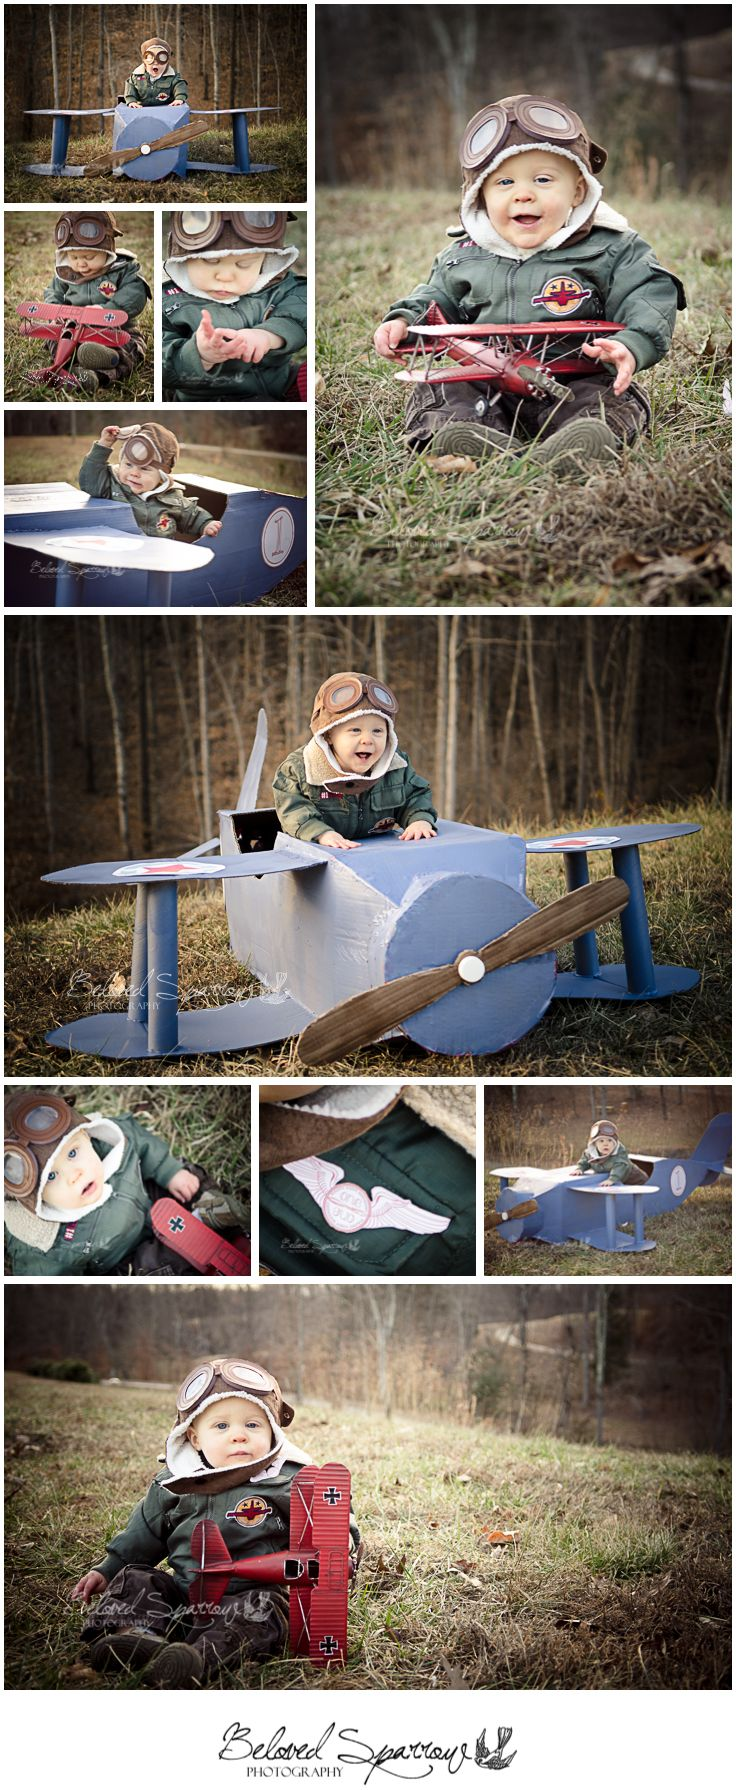 One Year Old Boy Portrait Session   One Year Old Portrait Ideas   Vintage Airplane Birthday Portrait   Baby Aviator Pilot Portraits   Cardboard Airplane Prop   Peachtree City Professional Photographer www.belovedsparrow.com